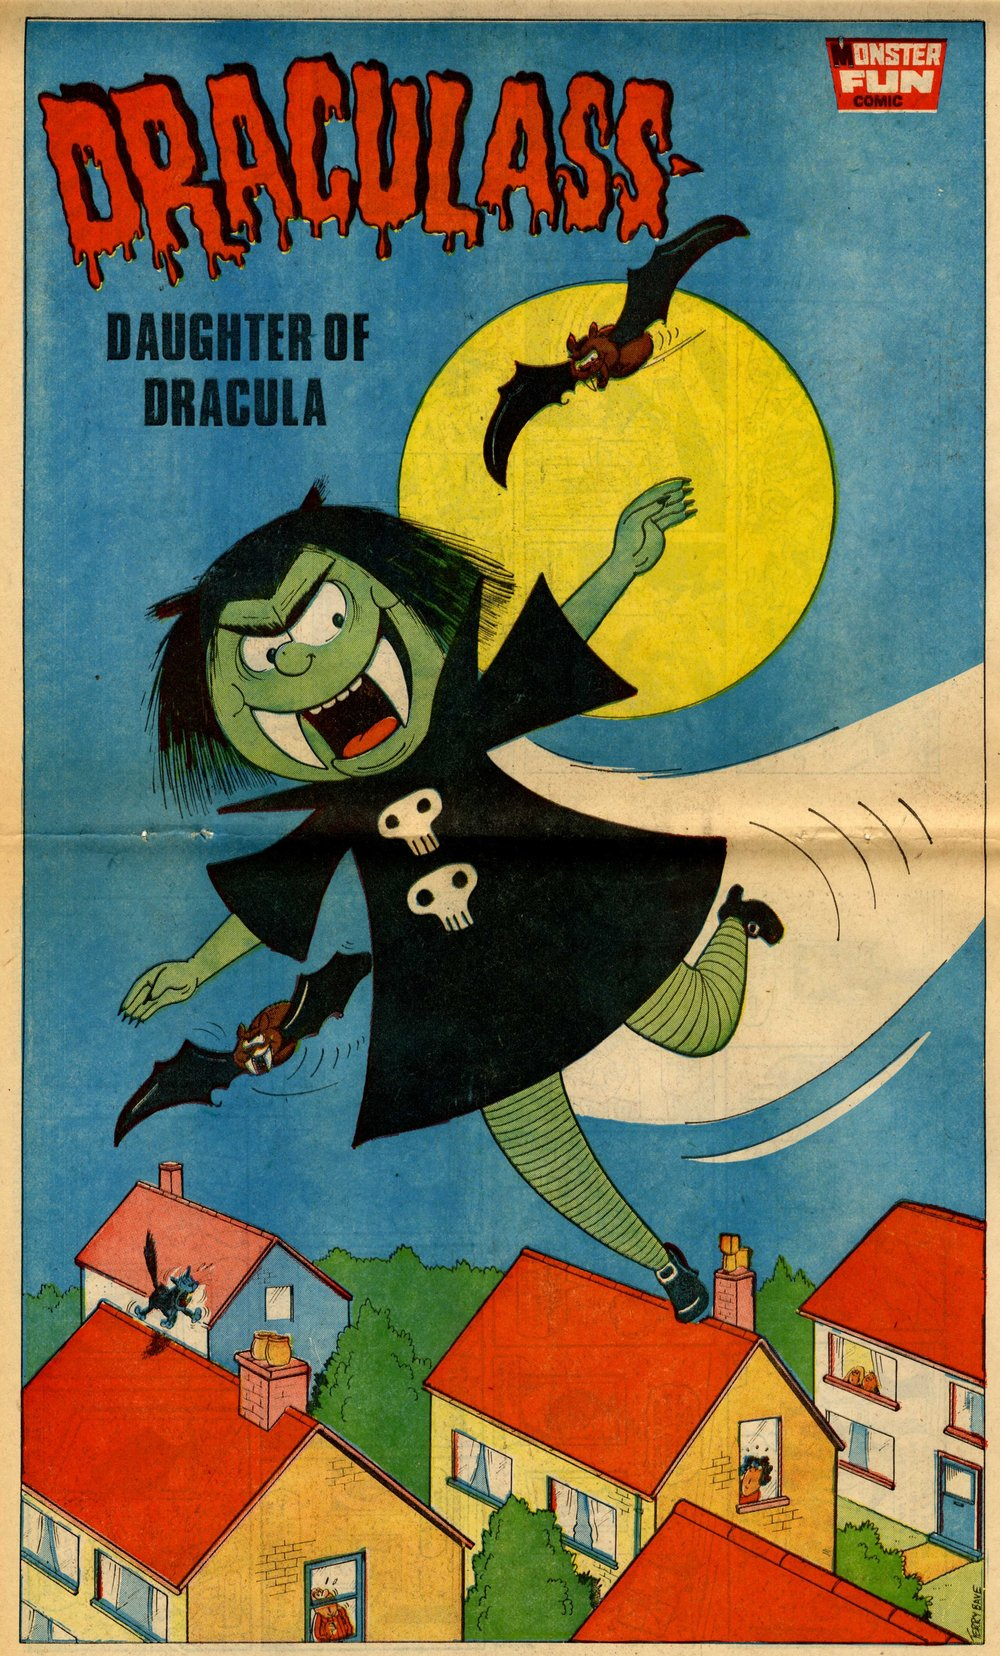 Draculass, drawn by Terry Bave